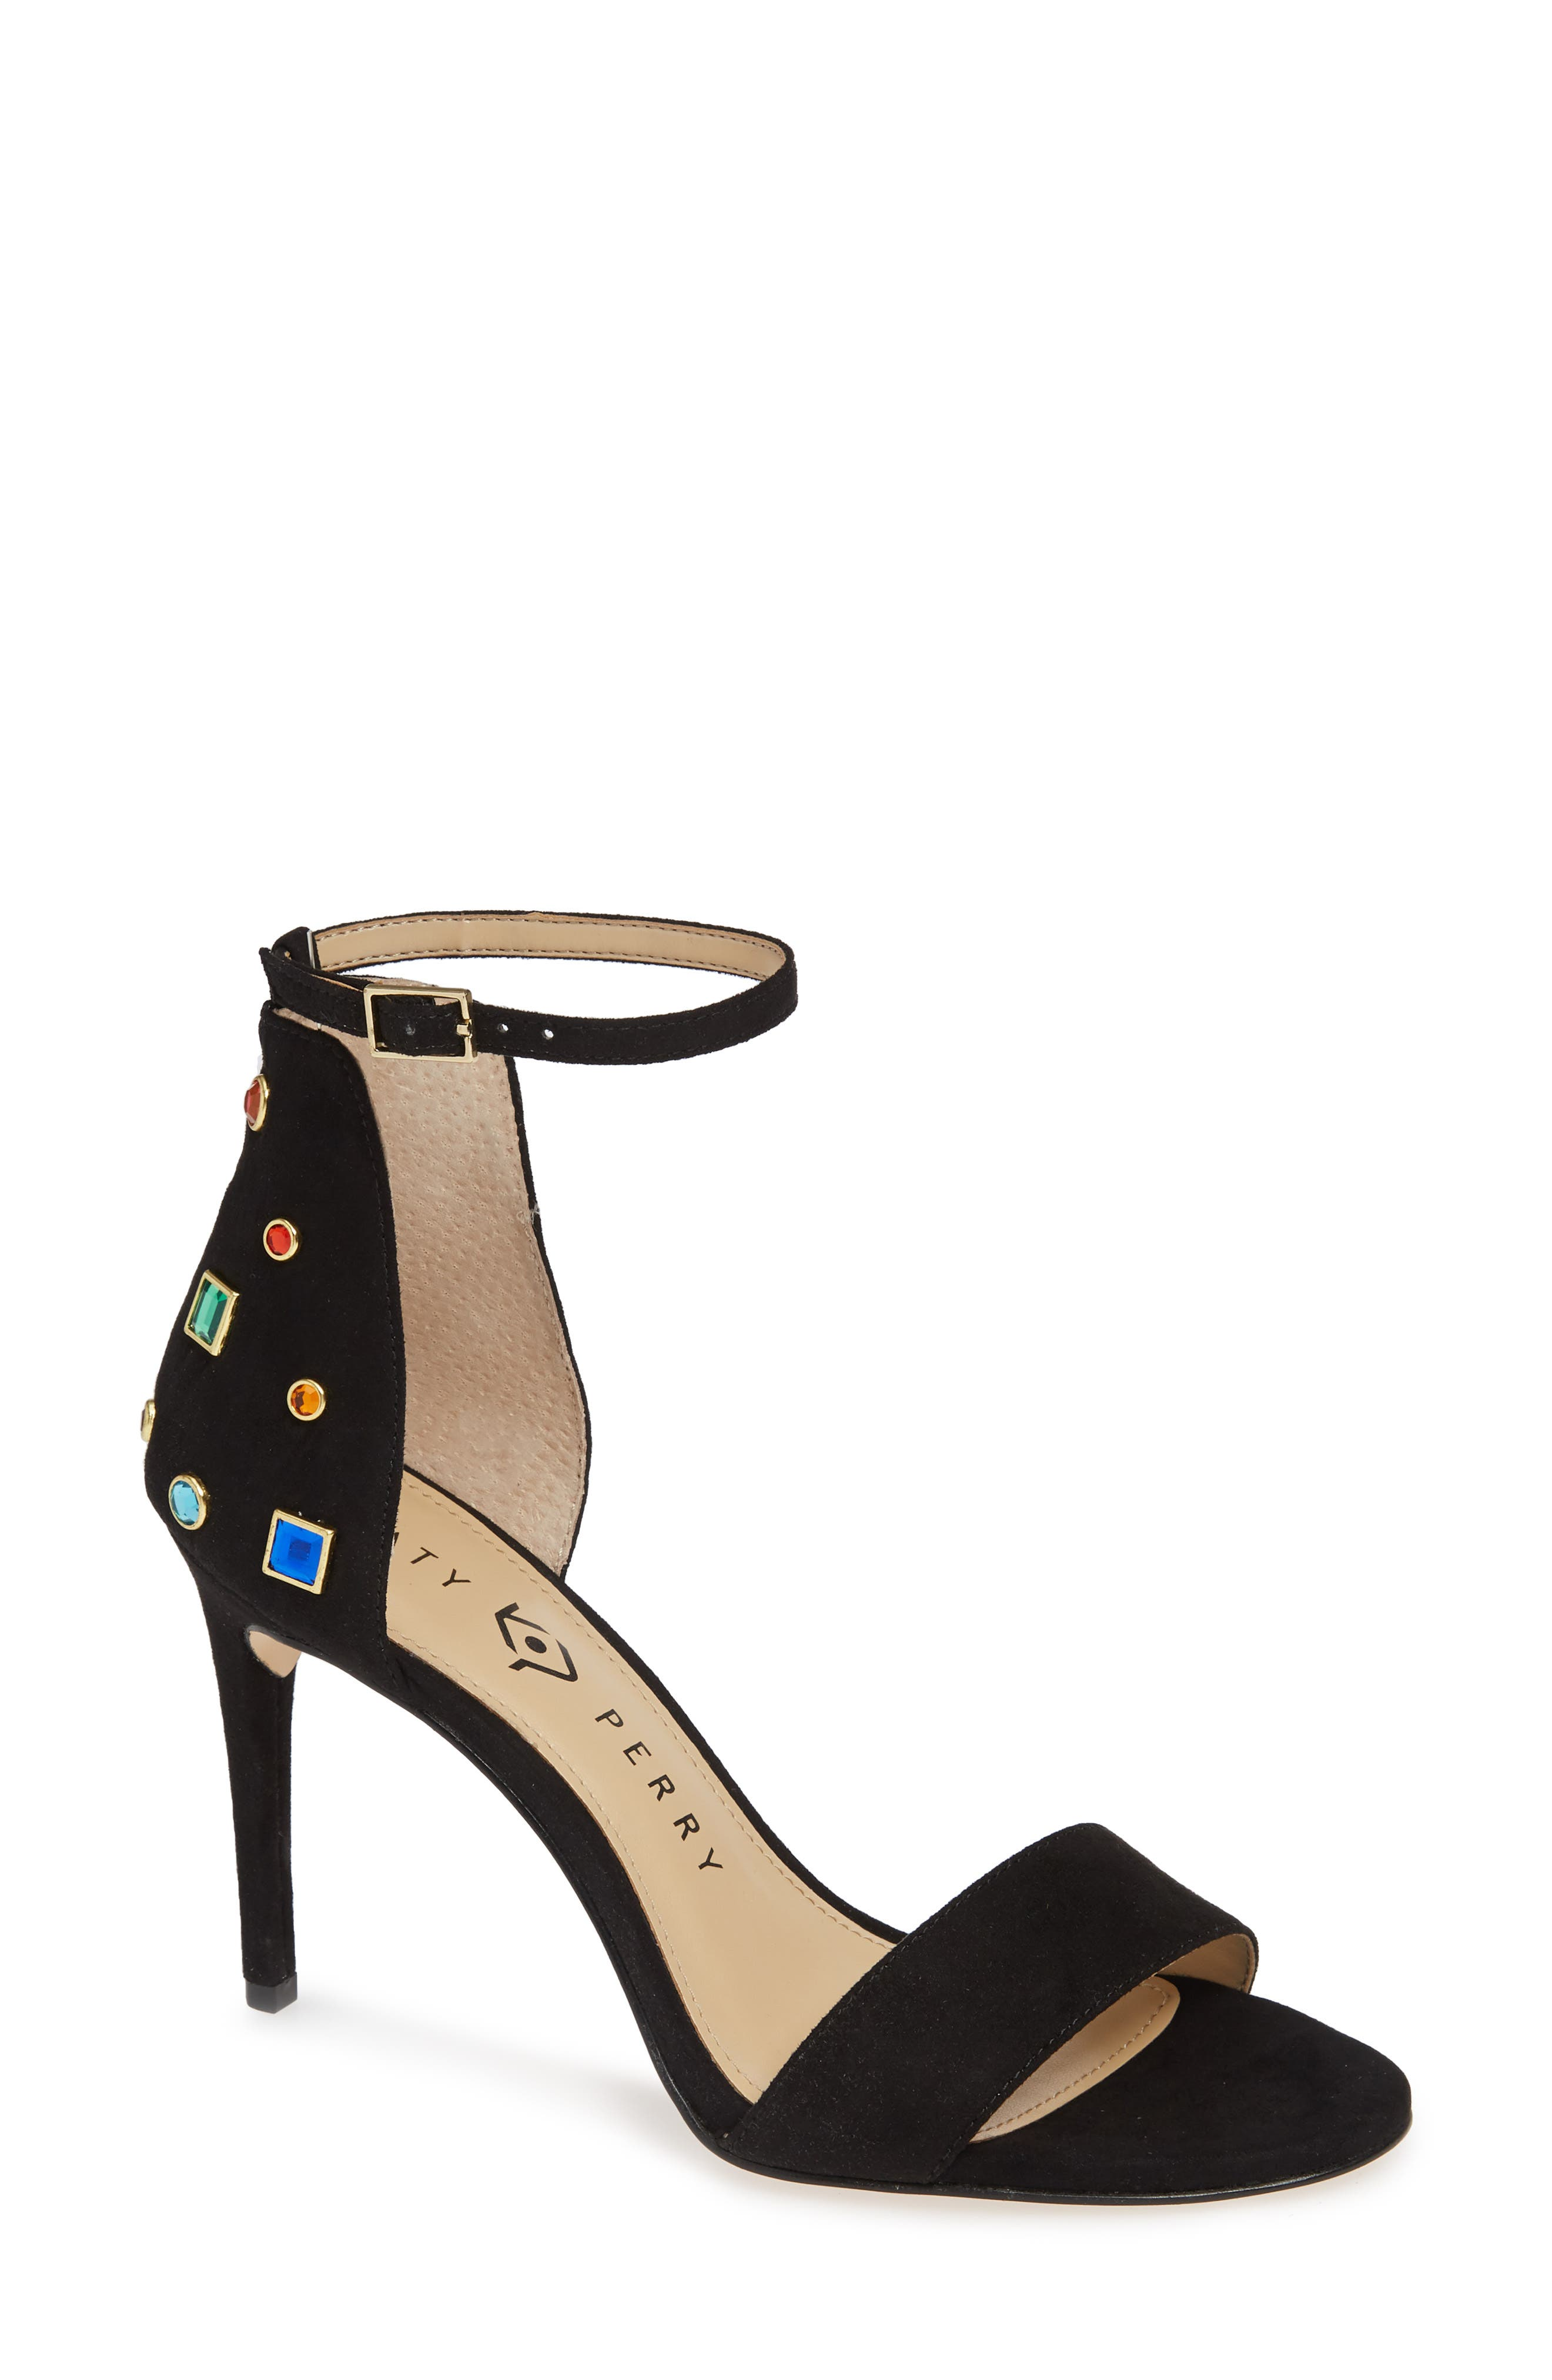 KATY PERRY, Jewel Ankle Strap Sandal, Main thumbnail 1, color, 001